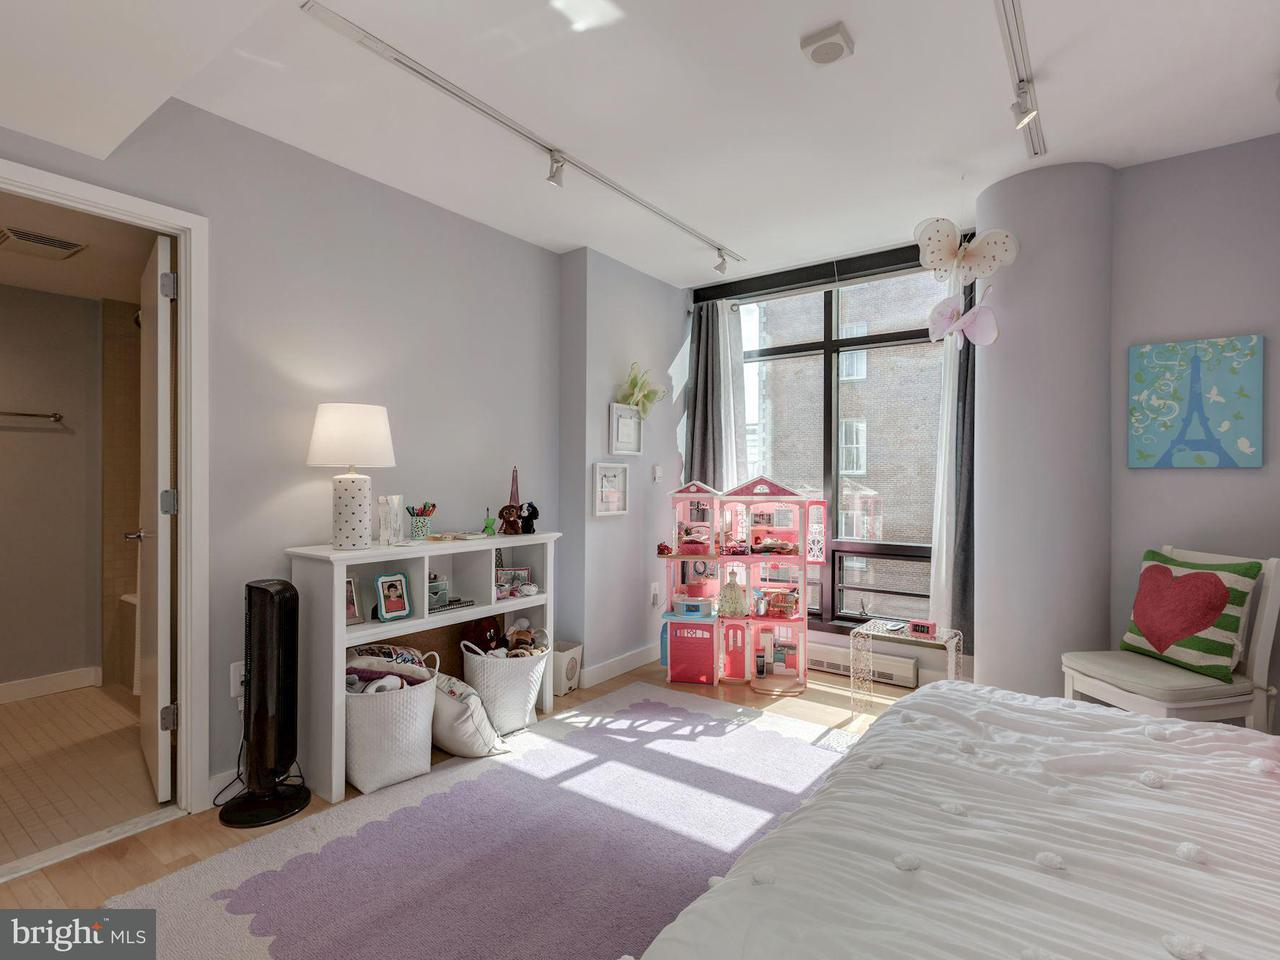 Additional photo for property listing at 912 F St NW #505  Washington, District Of Columbia 20004 United States